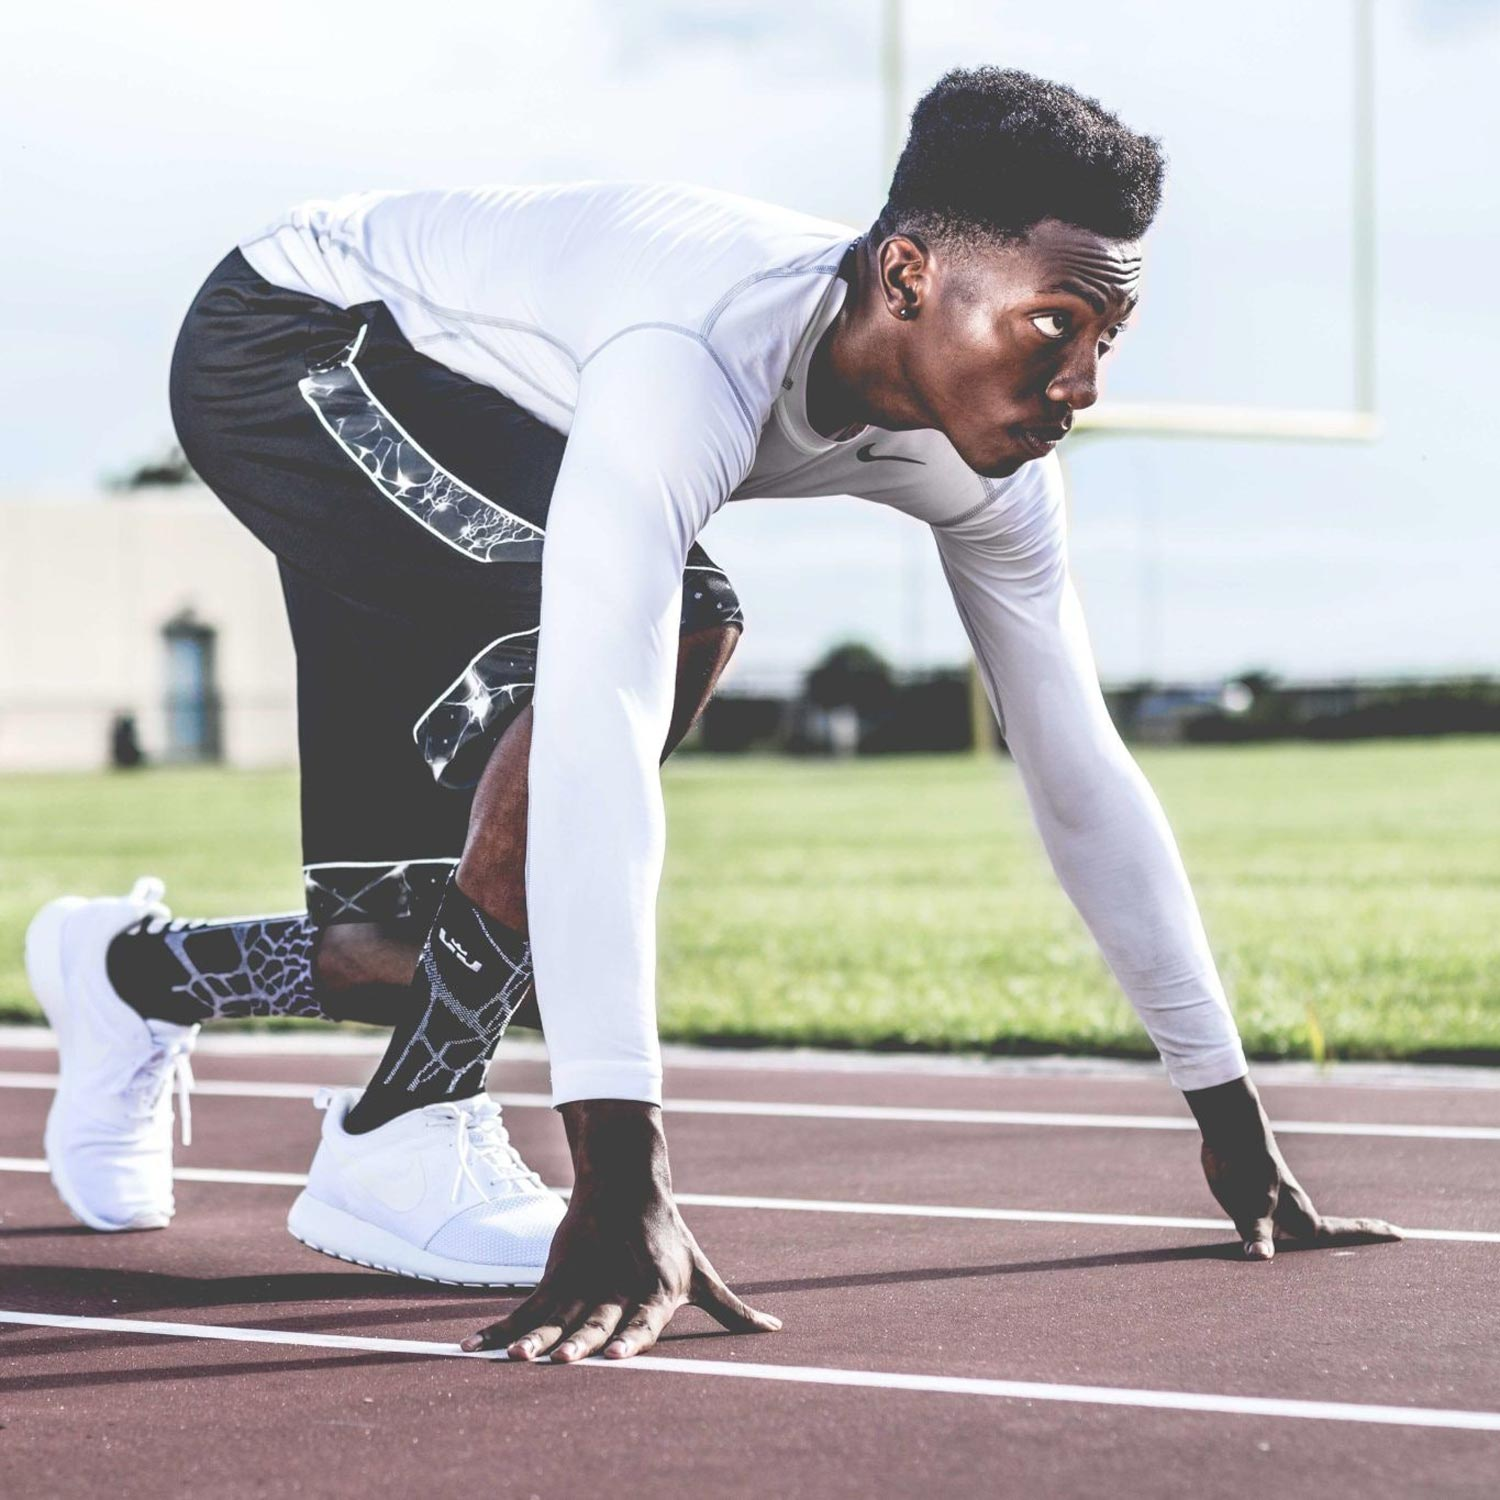 Video Running Analysis Photo by nappy from Pexels